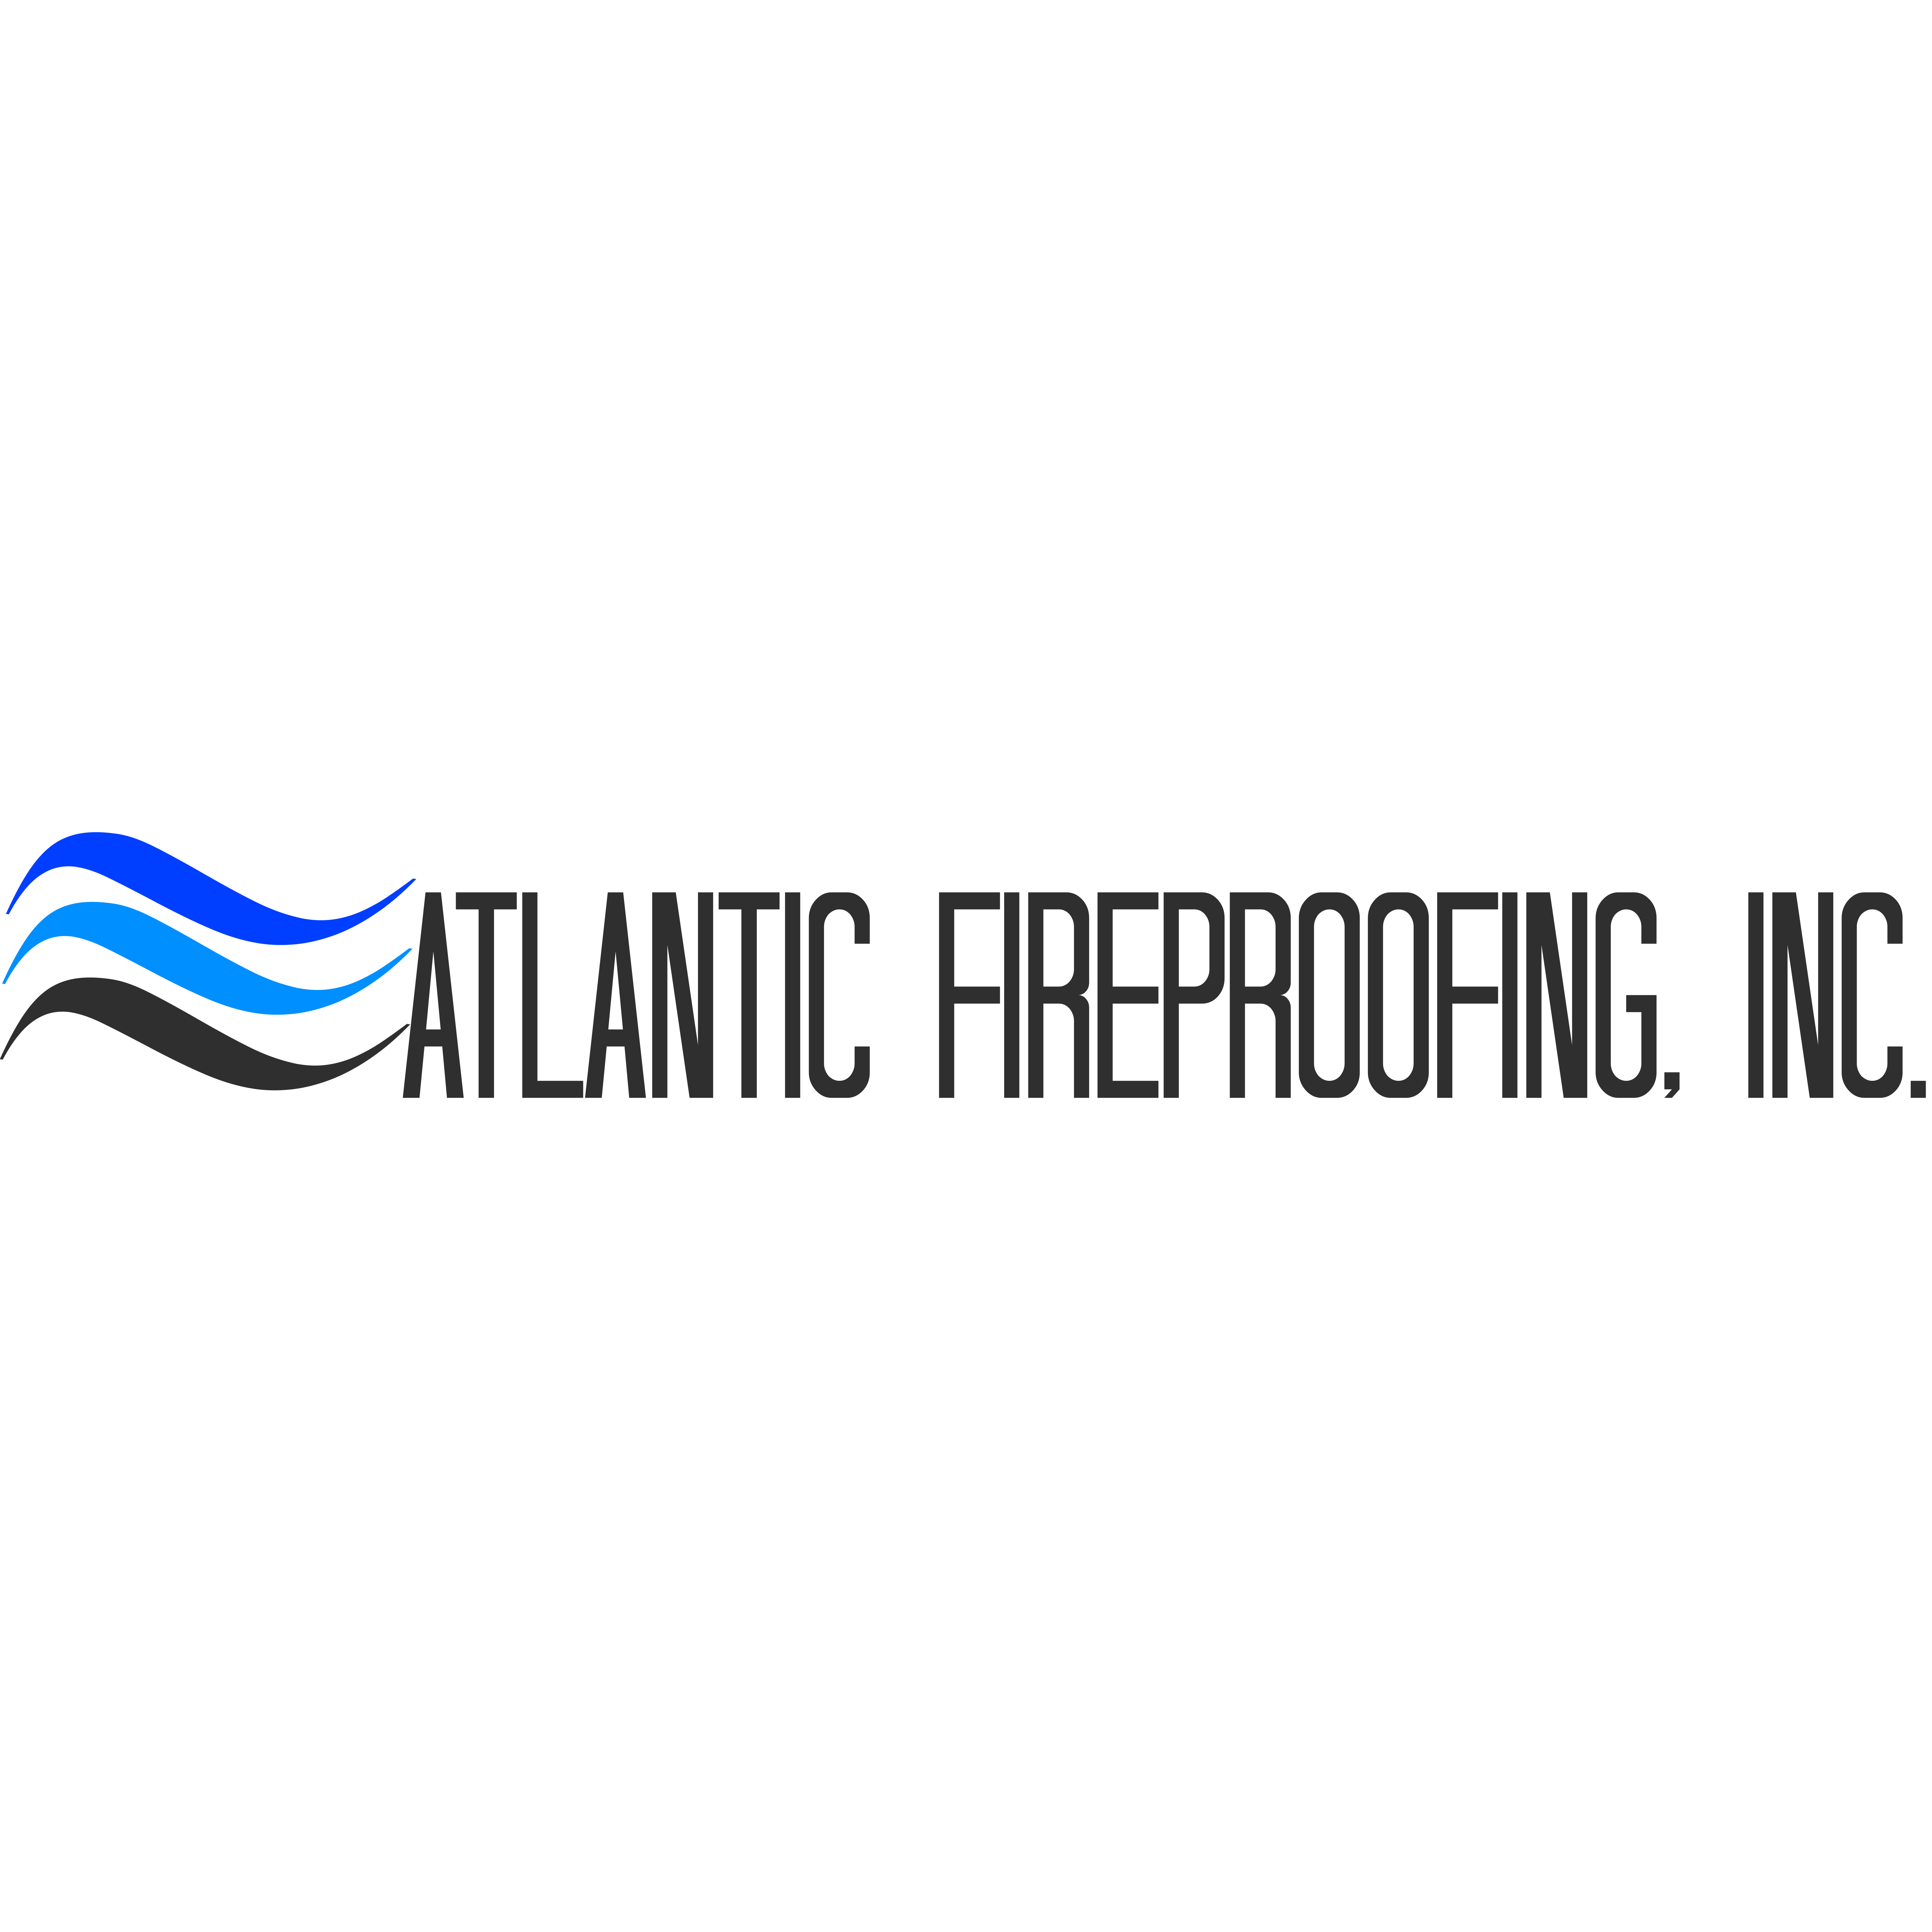 Atlantic Fireproofing, Inc.